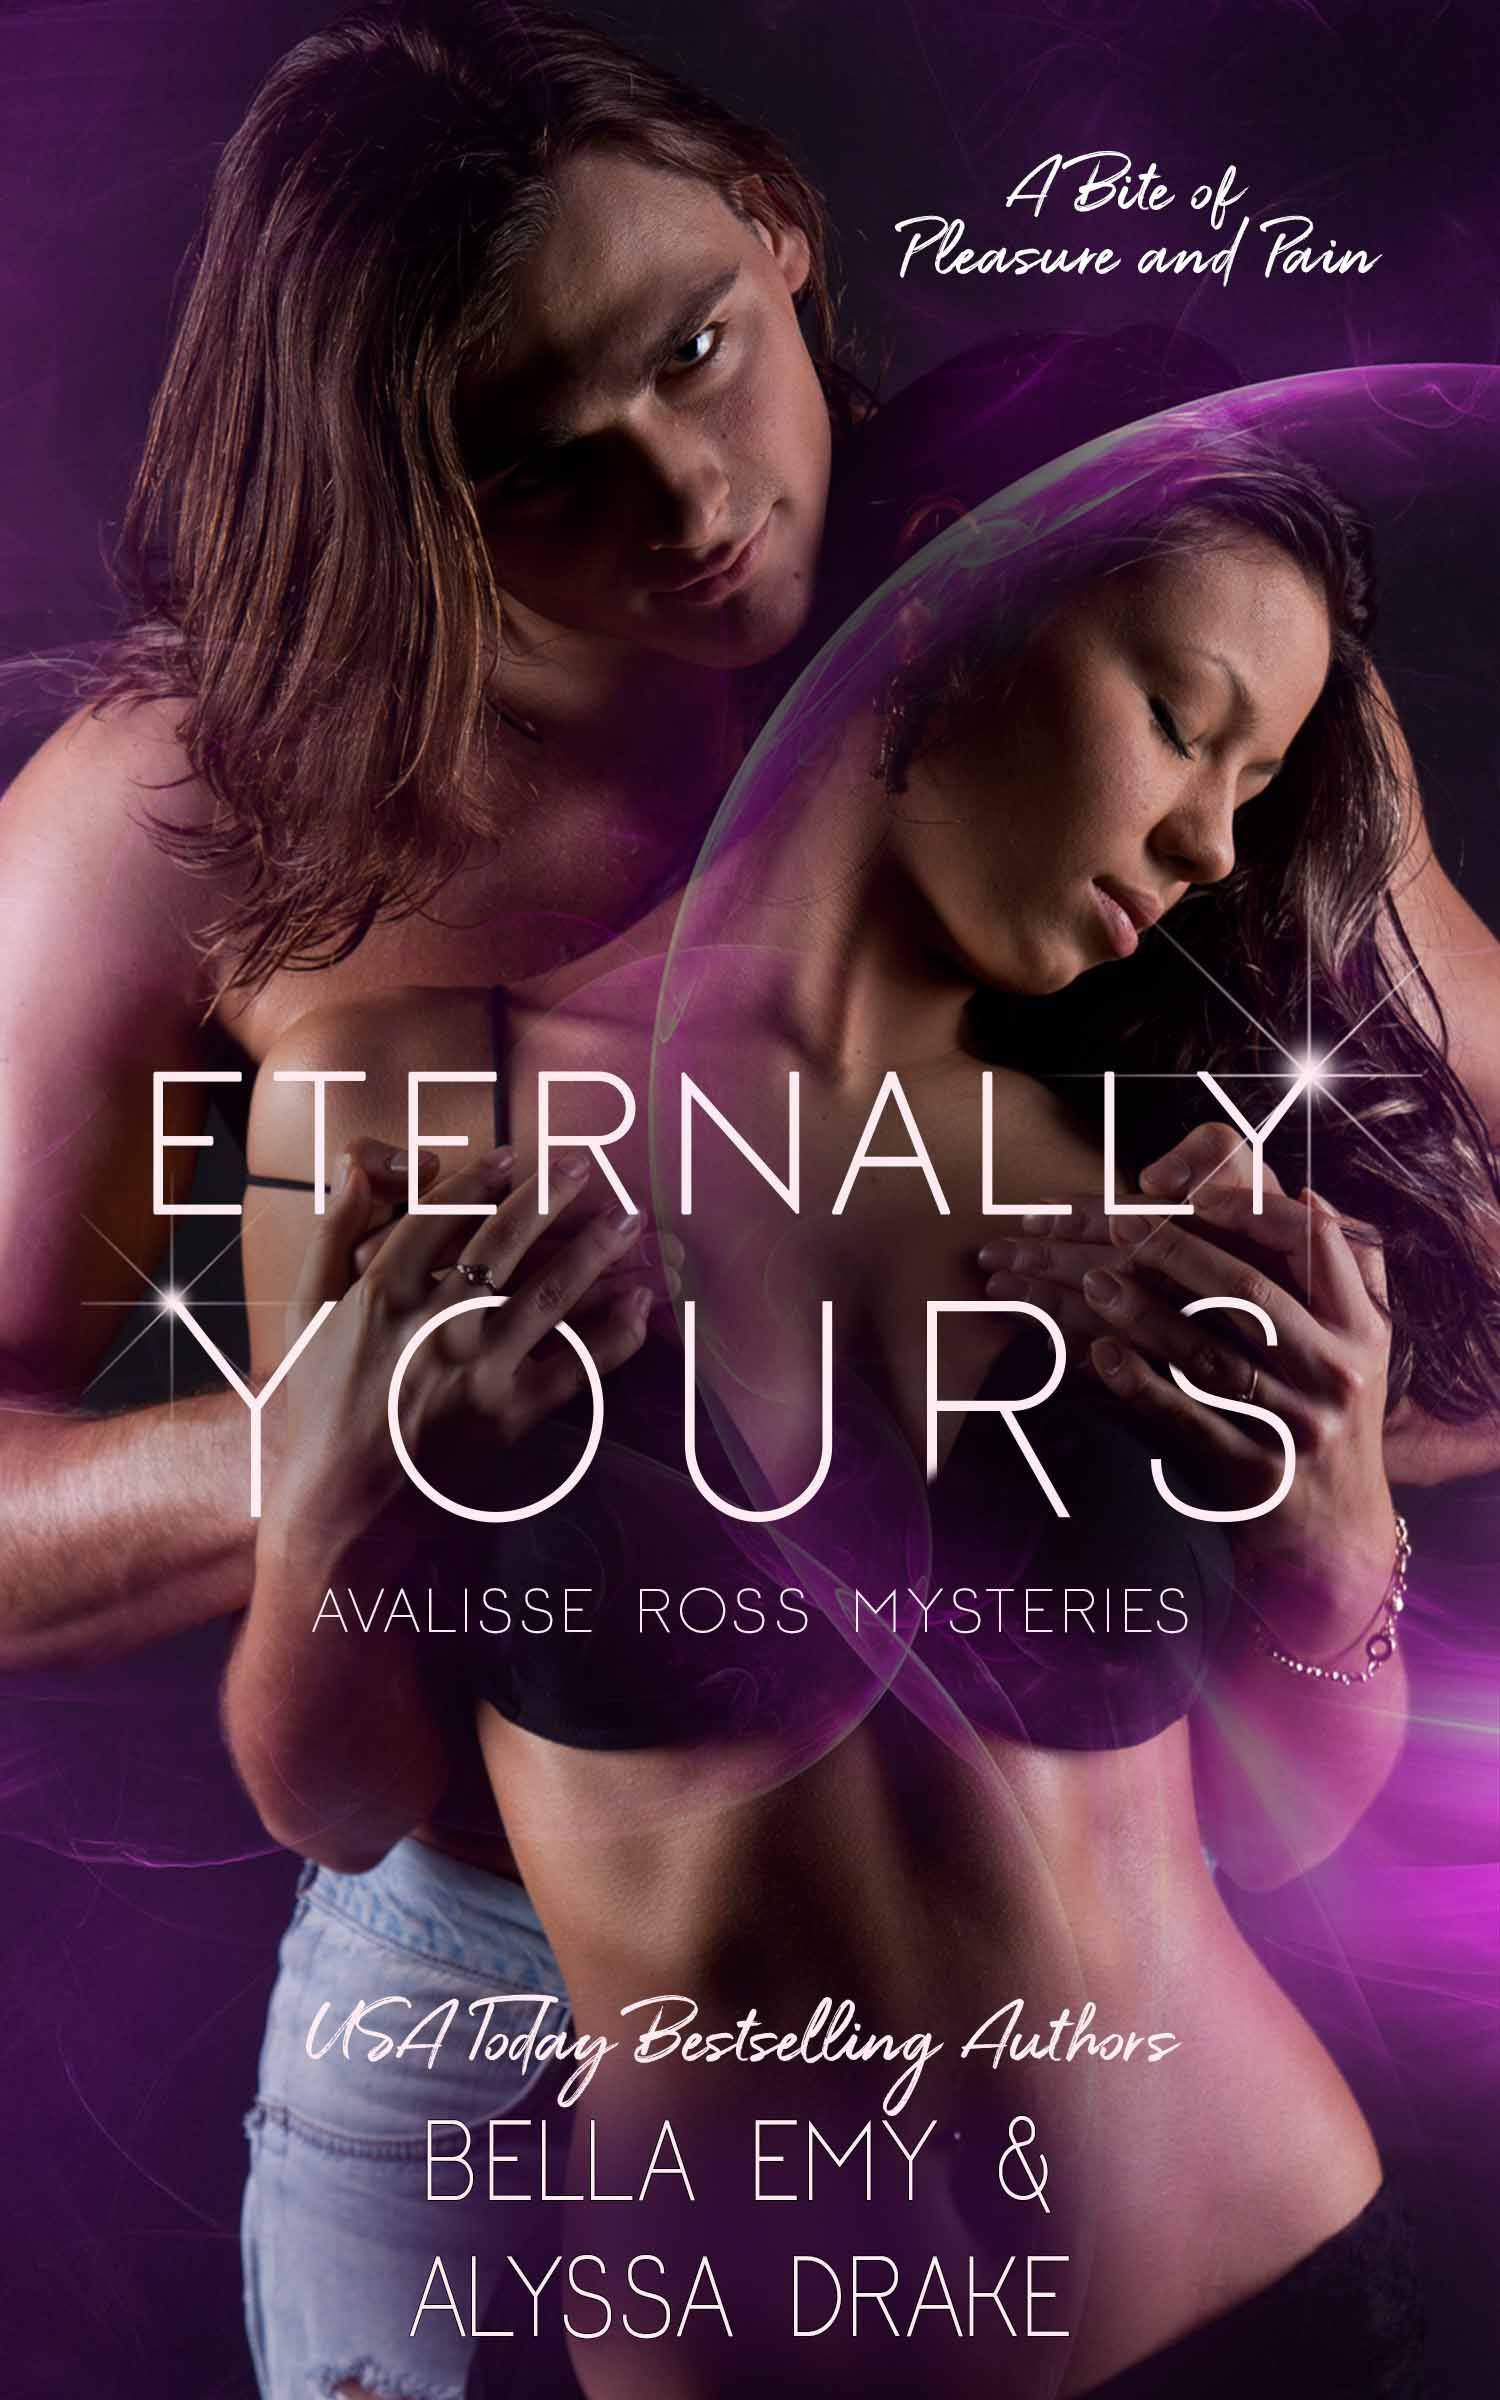 Eternally Yours (Avalisse Ross Mysteries, #2)